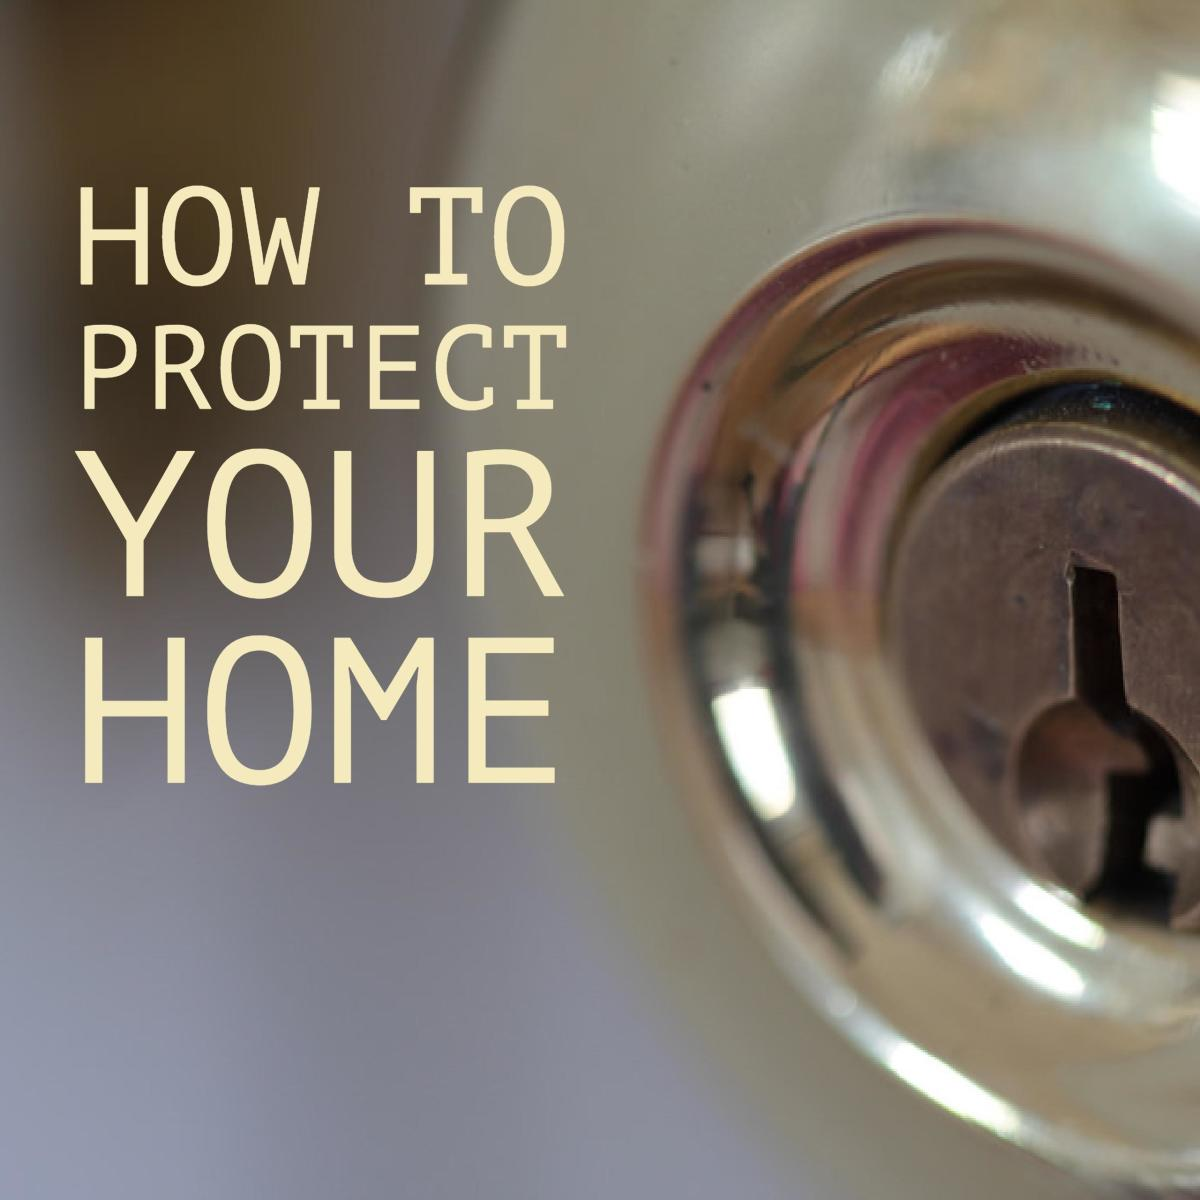 12 Clever Security Tips for Homeowners to Prevent Burglary